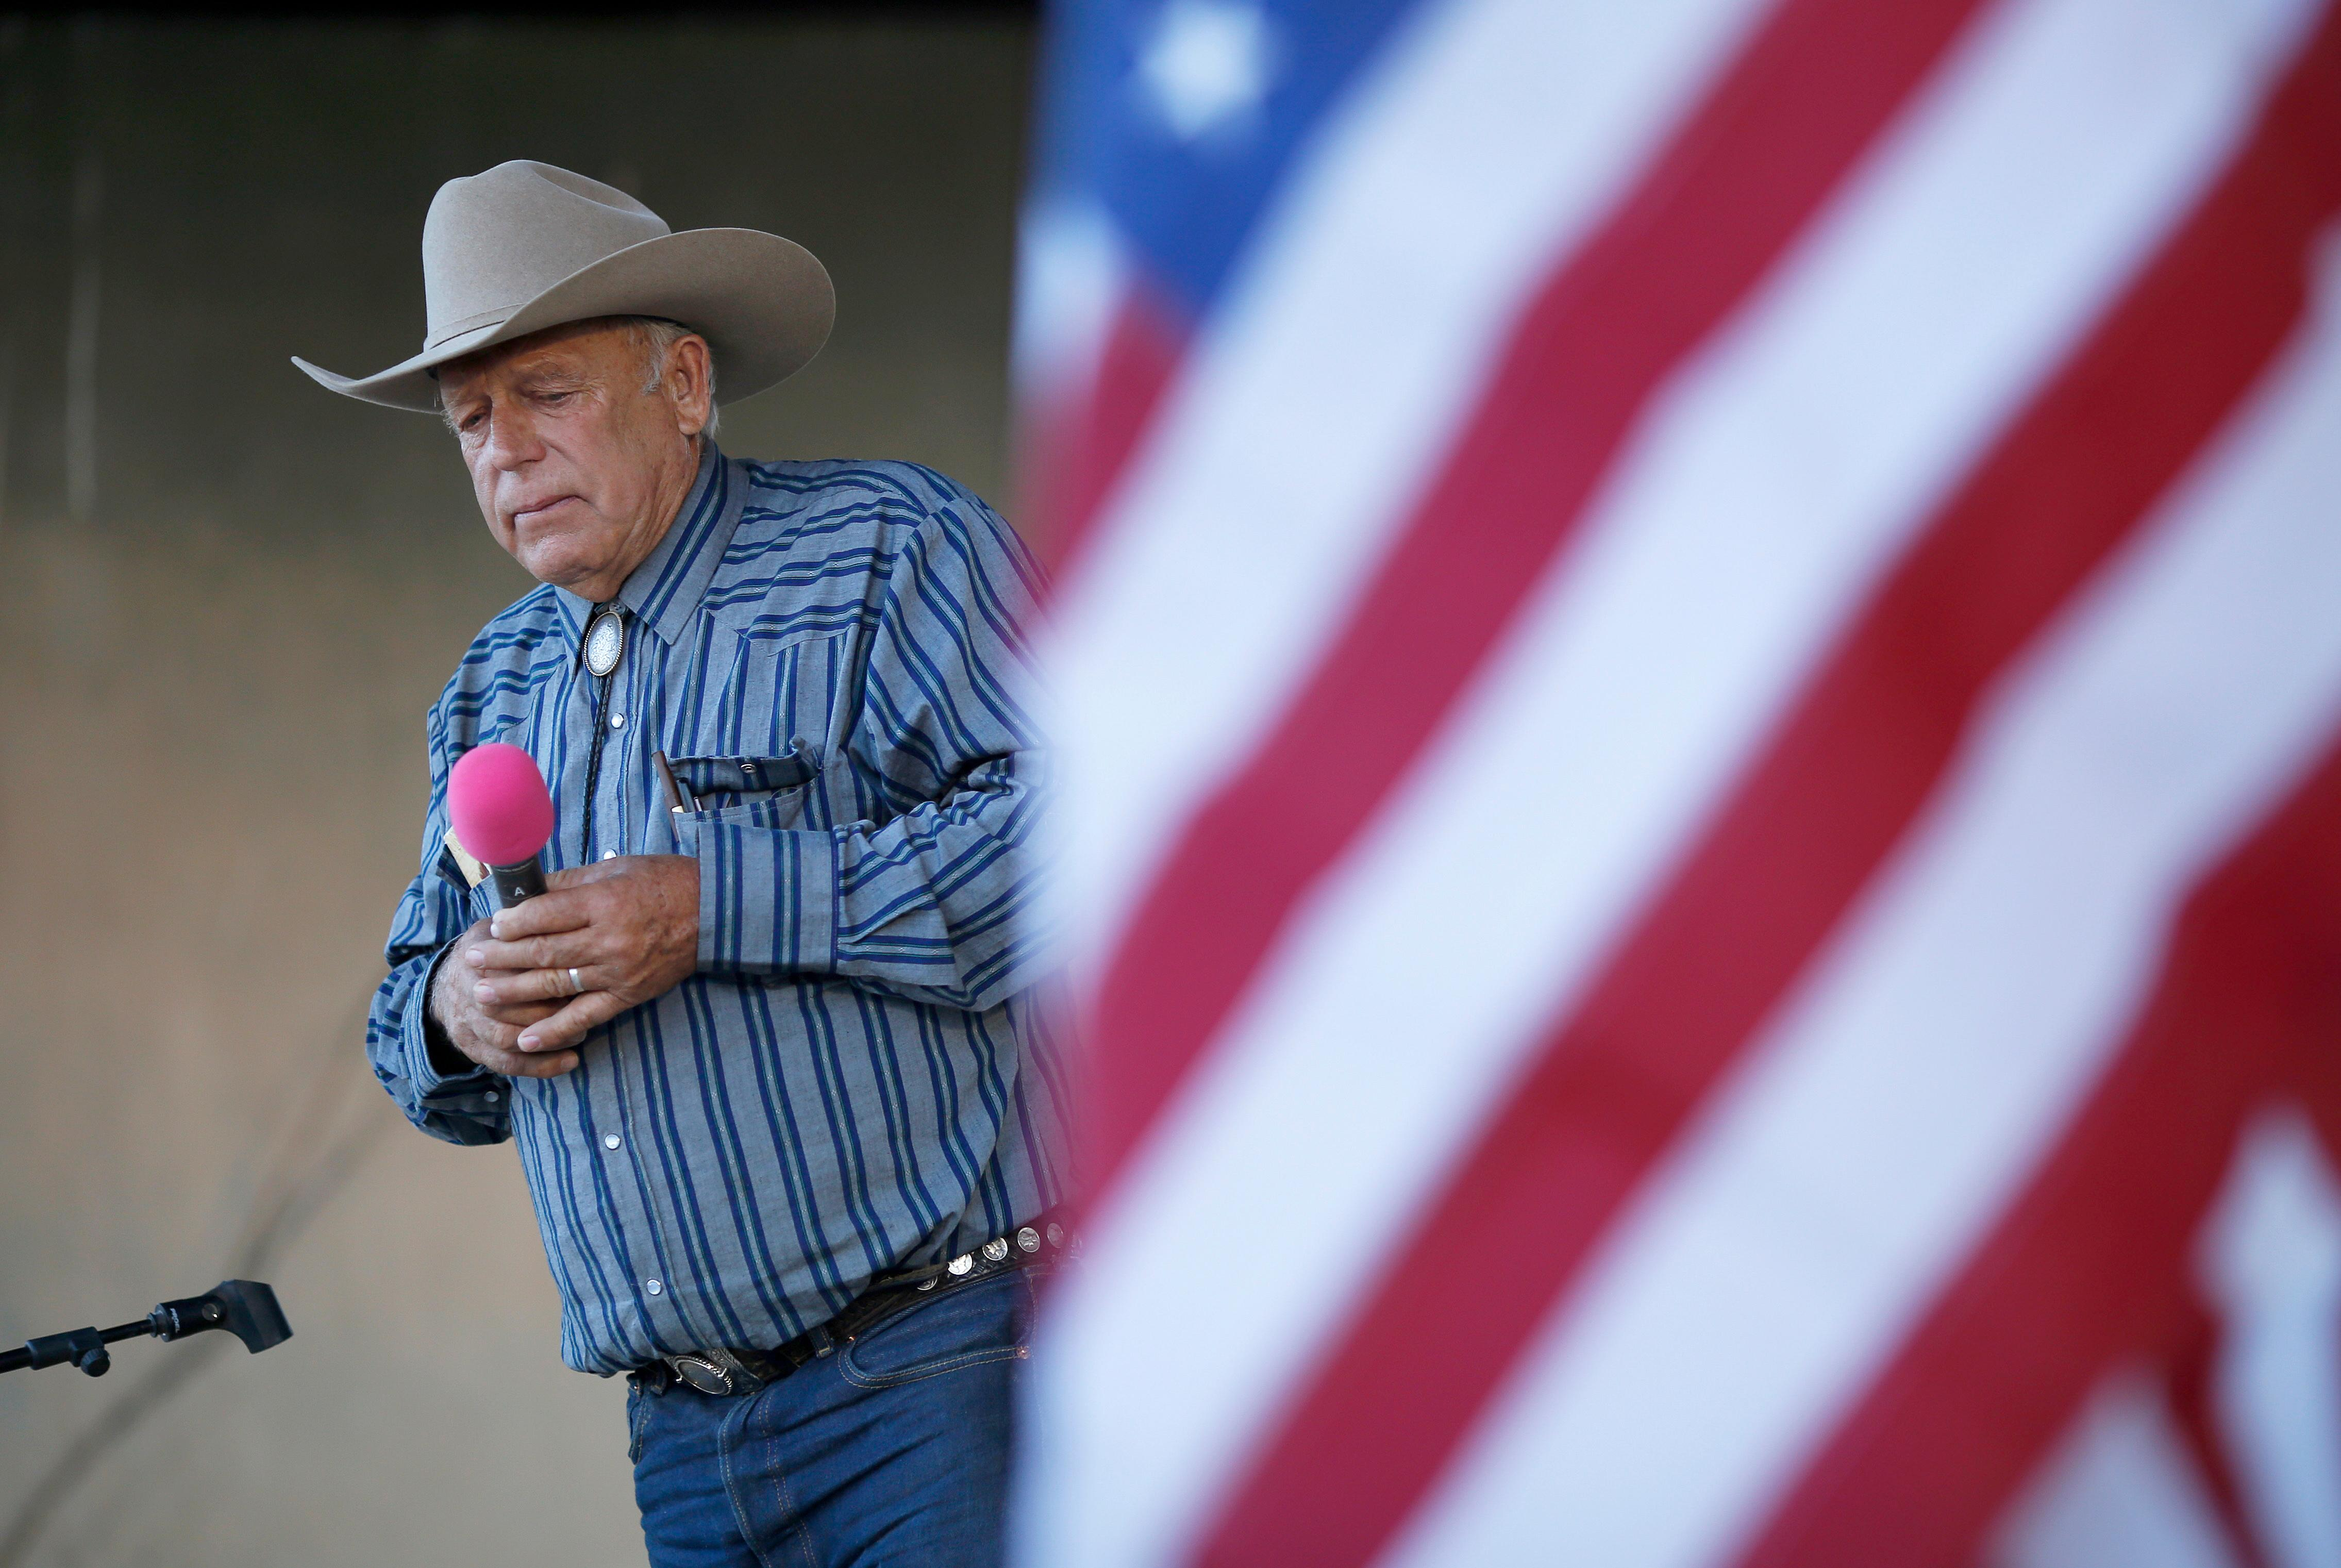 {&amp;nbsp;}File - In this April 11, 2015, file photo, rancher Cliven Bundy speaks at an event in Bunkerville, Nev. Bundy has long resisted federal control of public land, culminating in an armed standoff in 2014 on U.S. Bureau of Land Management acreage in Nevada. Some Western lawmakers are arguing that BLM headquarters should be moved from Washington, D.C., to the West, where most public lands are. (AP Photo/John Locher, File)<p></p>